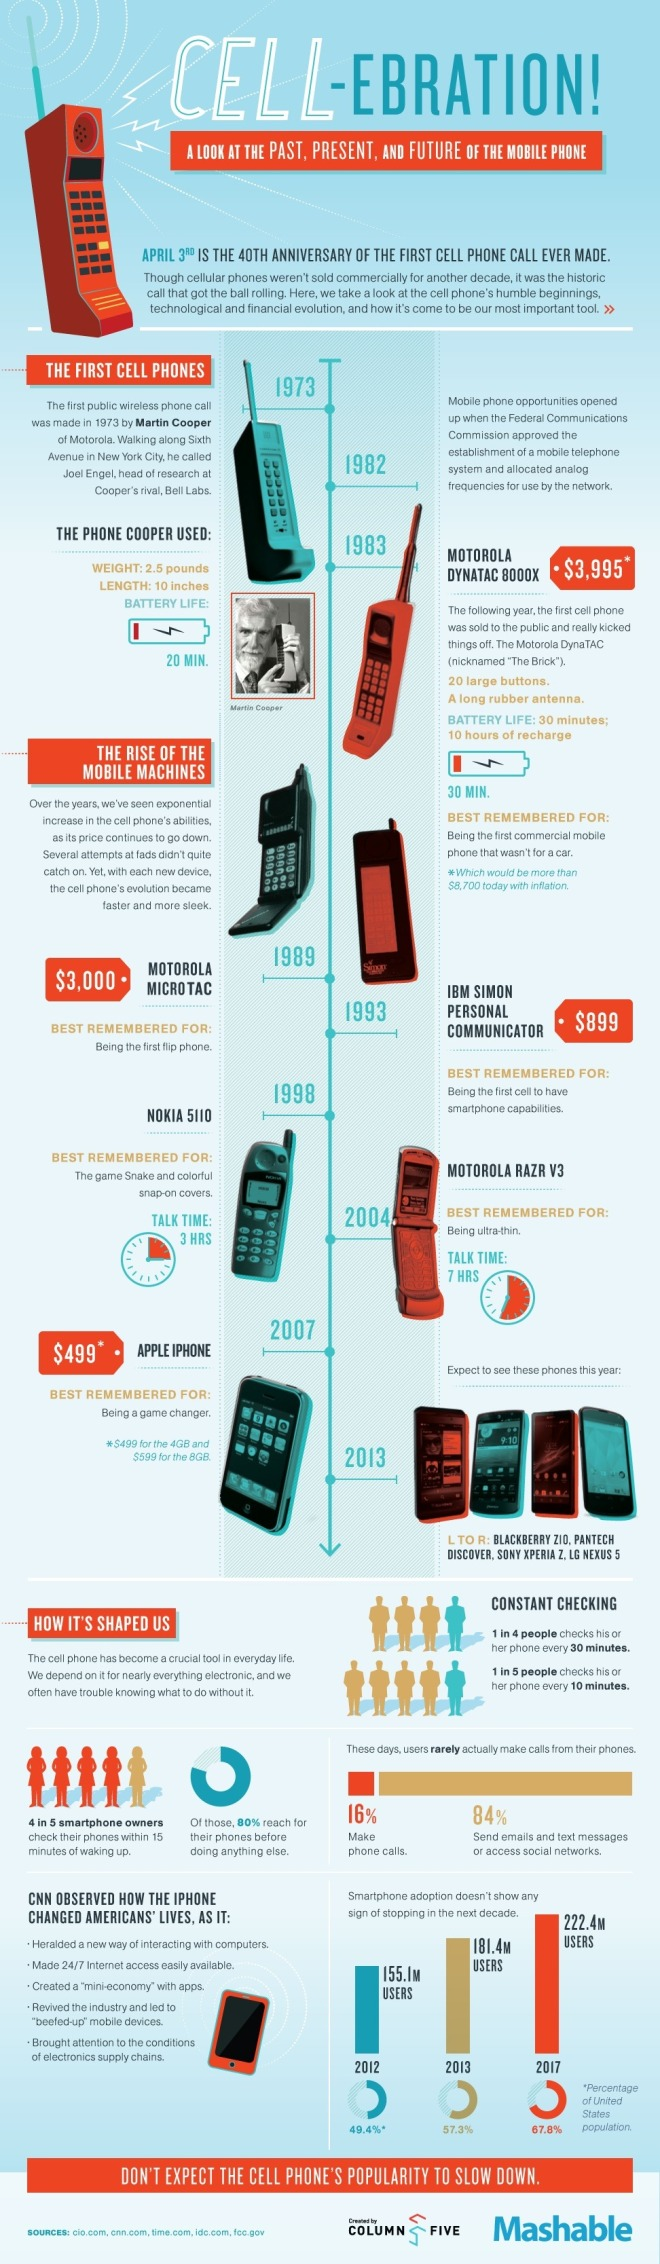 CELL-ebration: A Look at the Past, Present, and Future of the Mobile Phone infographic